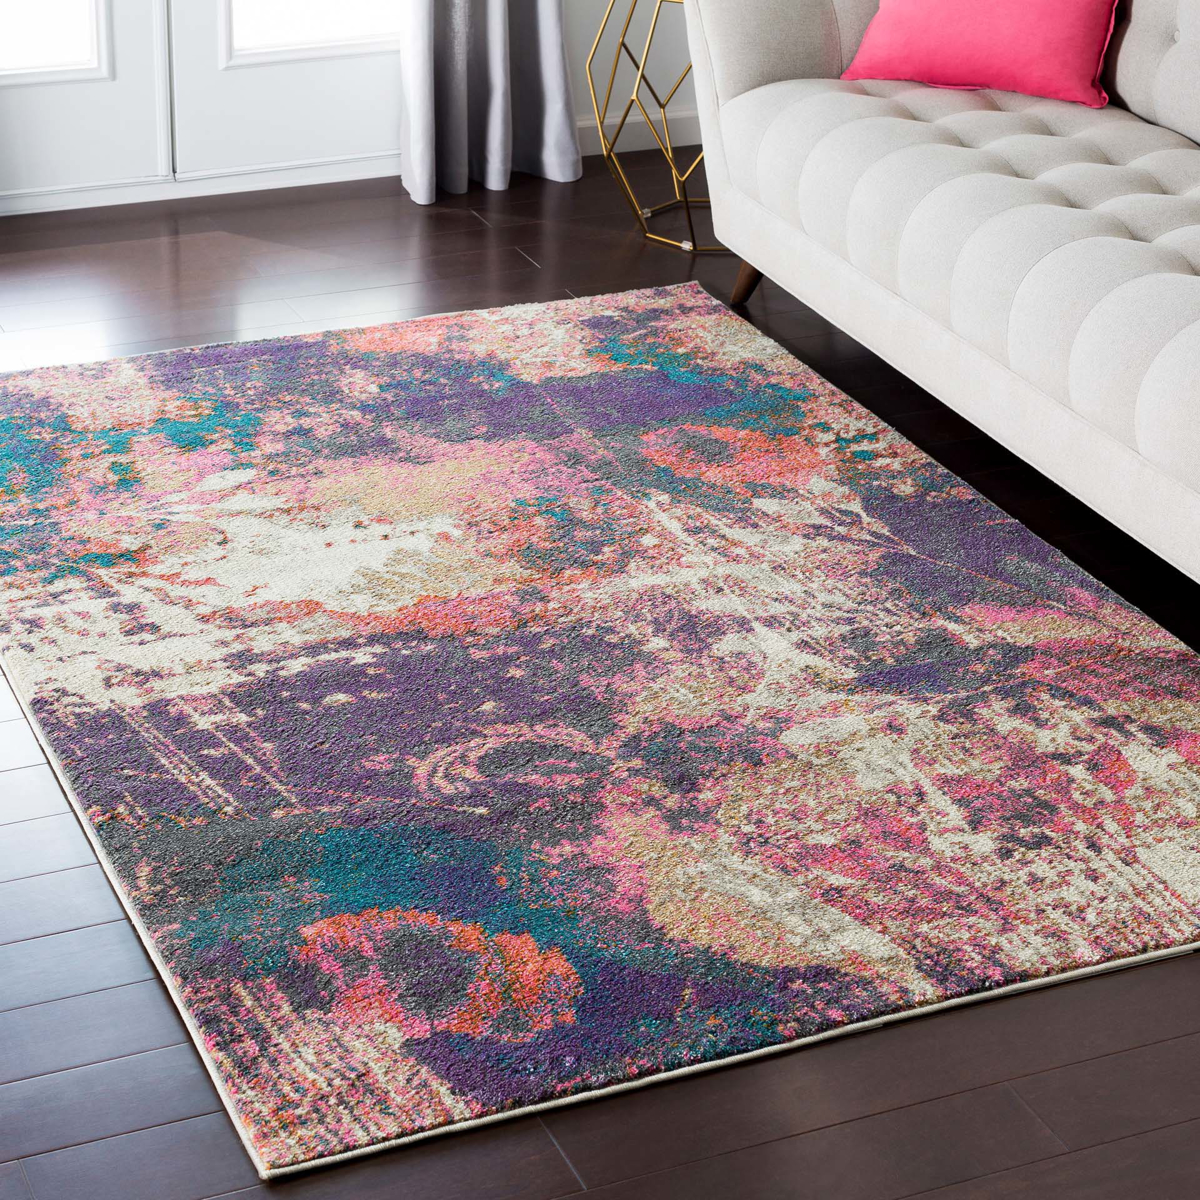 Abstract art inspired Turkish area rug with splashes of cream, purple, pink, orange and teal in living room